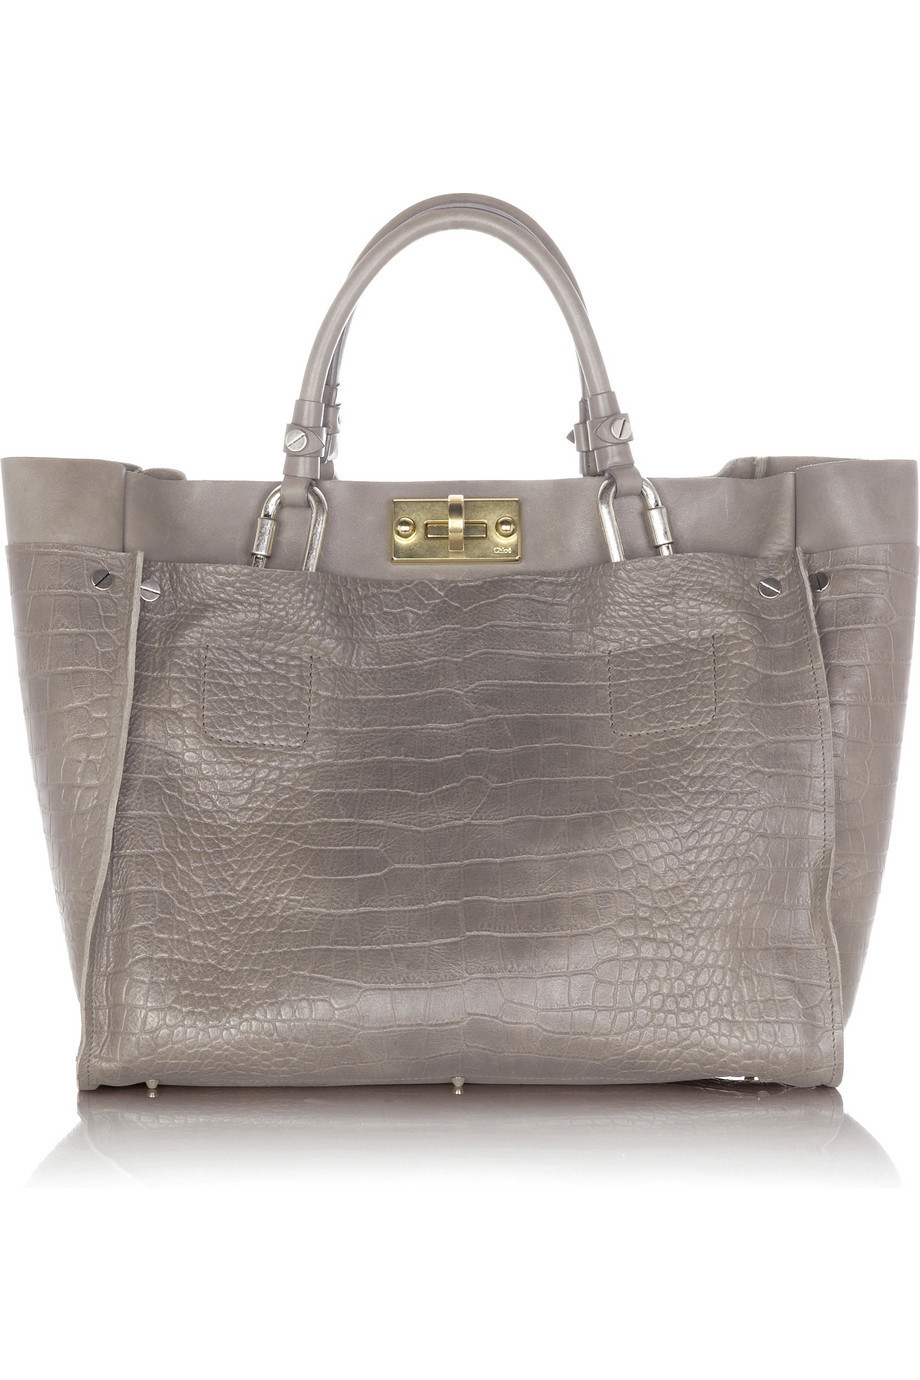 Chloé Cyndi leather tote | NET-A-PORTER.COM